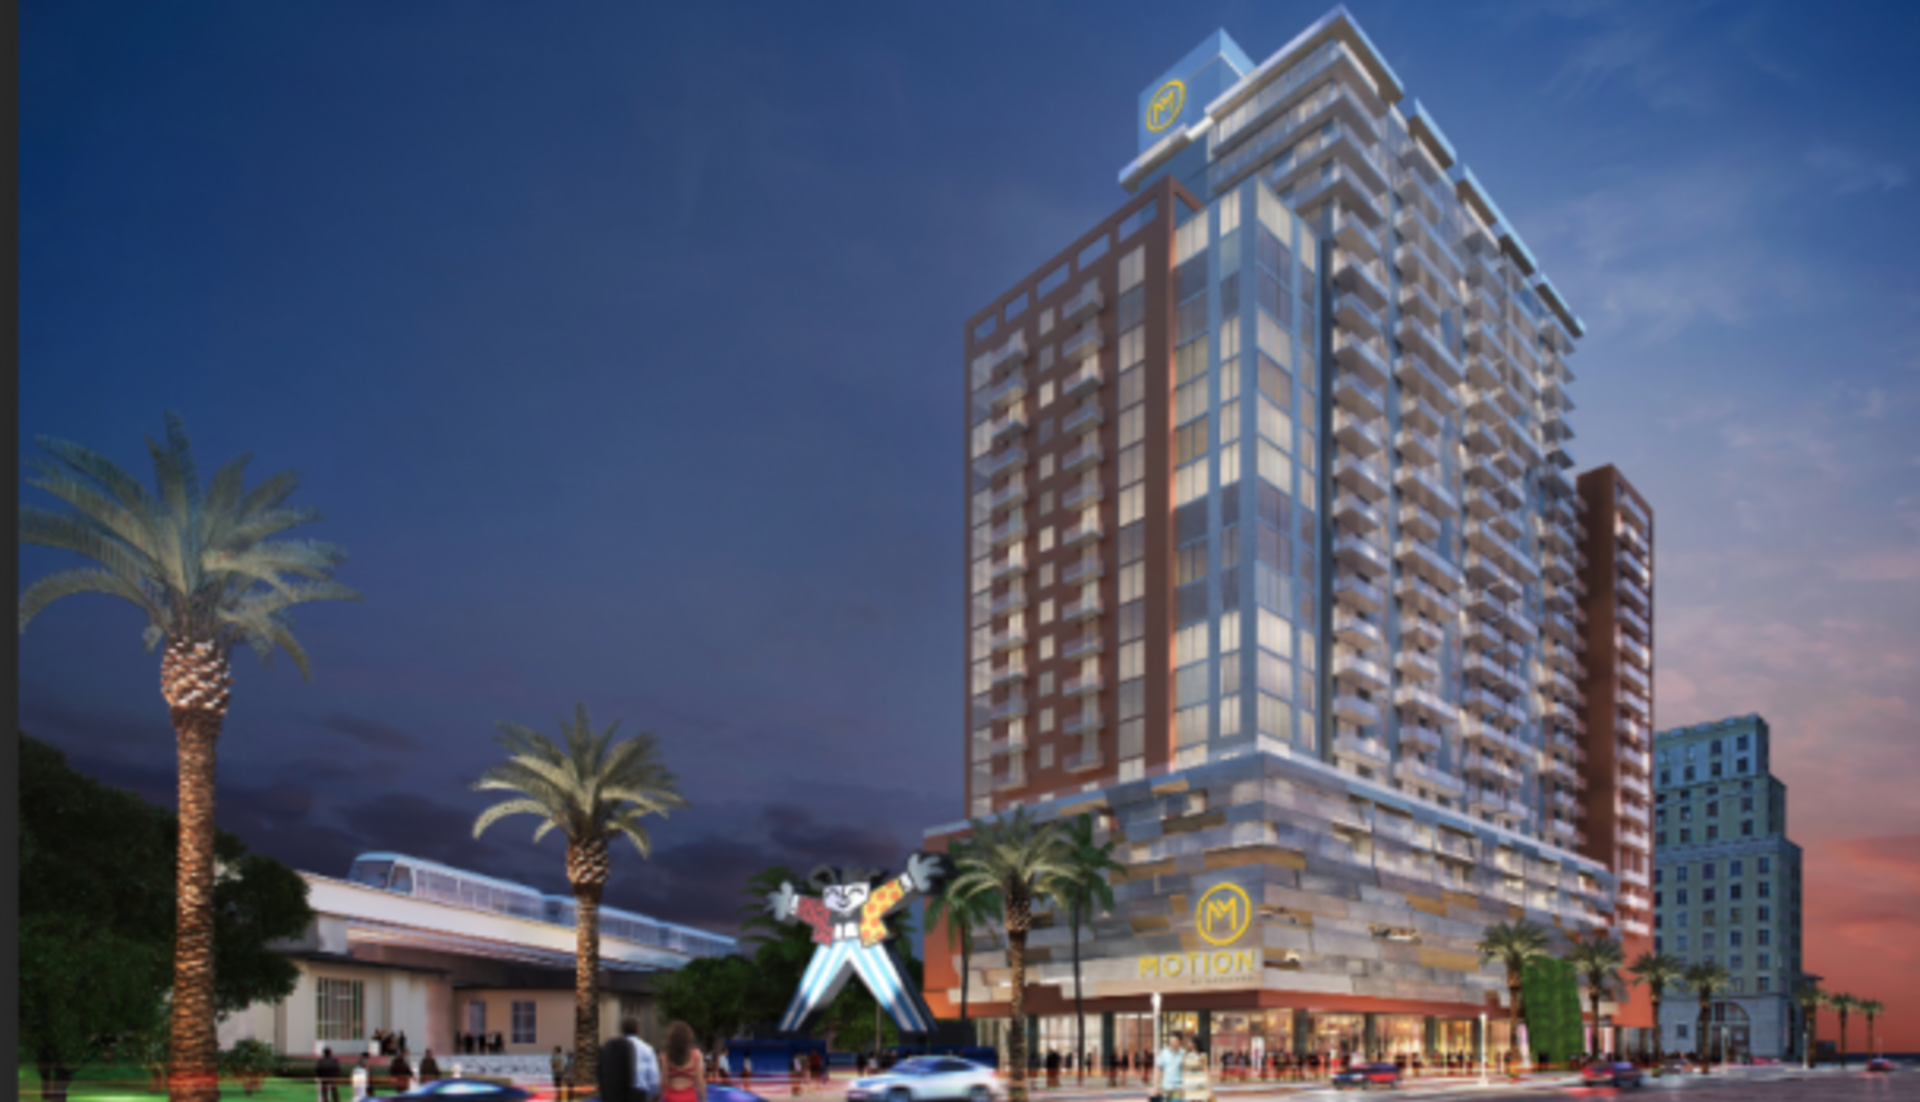 LUXURY APARTMENTS NEAR DADELAND NORTH GET $50 MILLION CONSTRUCTION LOAN